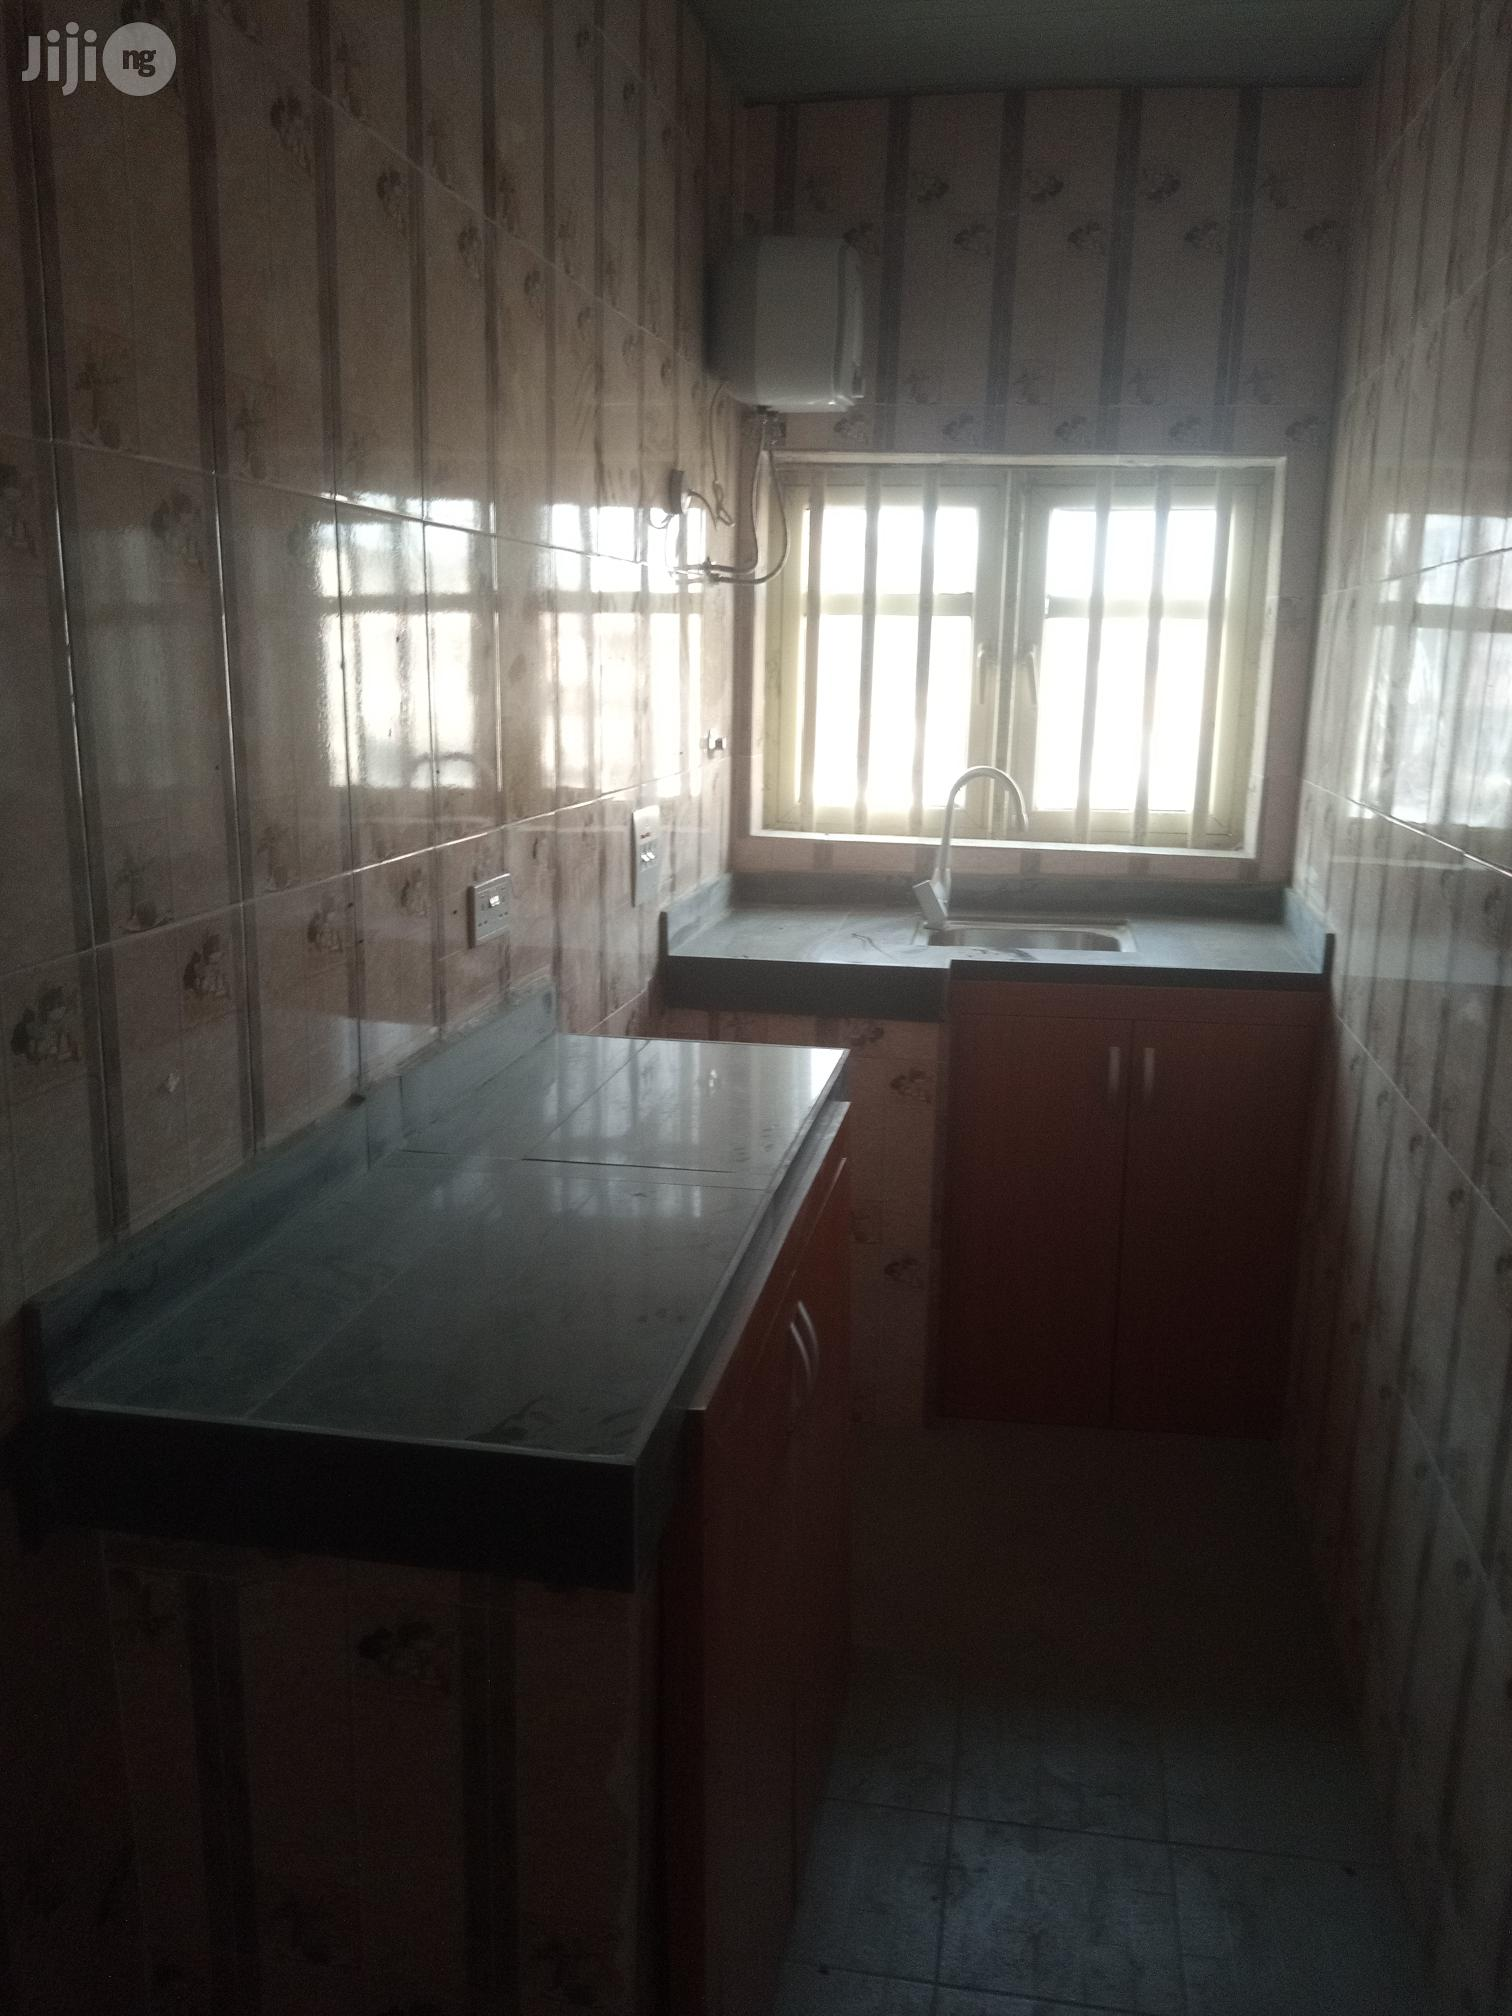 Newly Mini Flat for Rent   Houses & Apartments For Rent for sale in Surulere, Lagos State, Nigeria